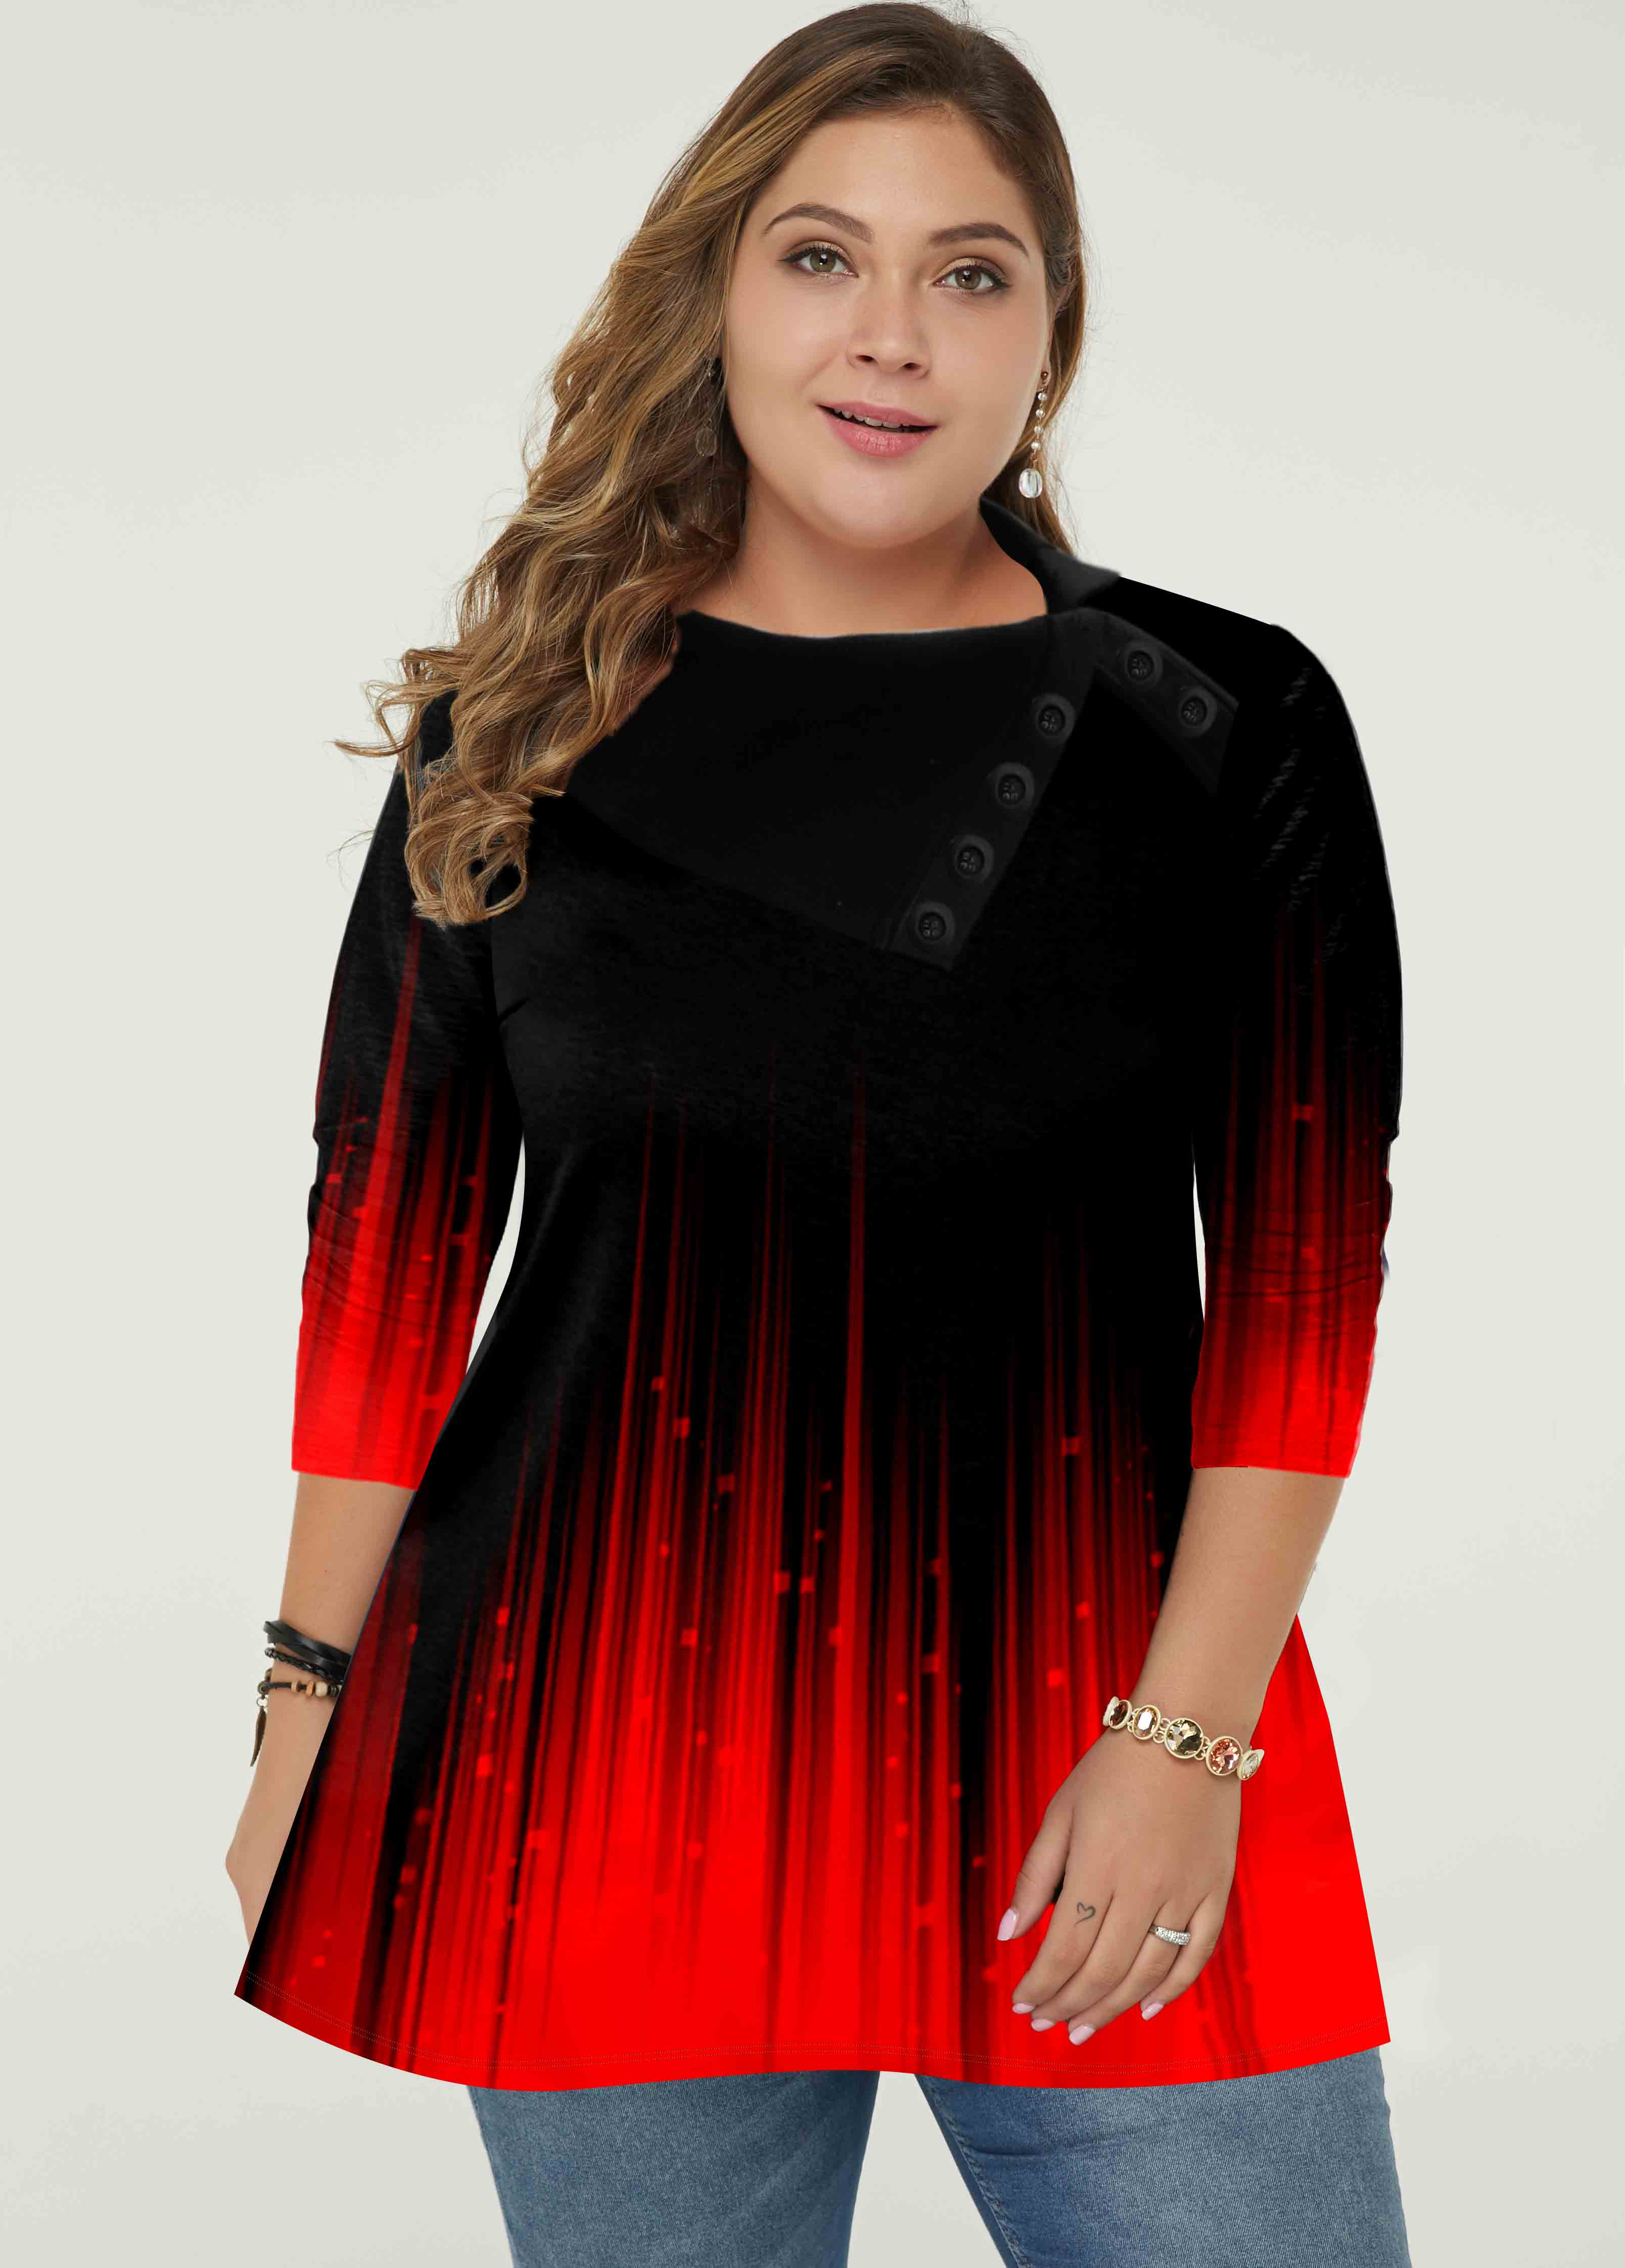 Ombre Long Sleeve Plus Size Tunic Top